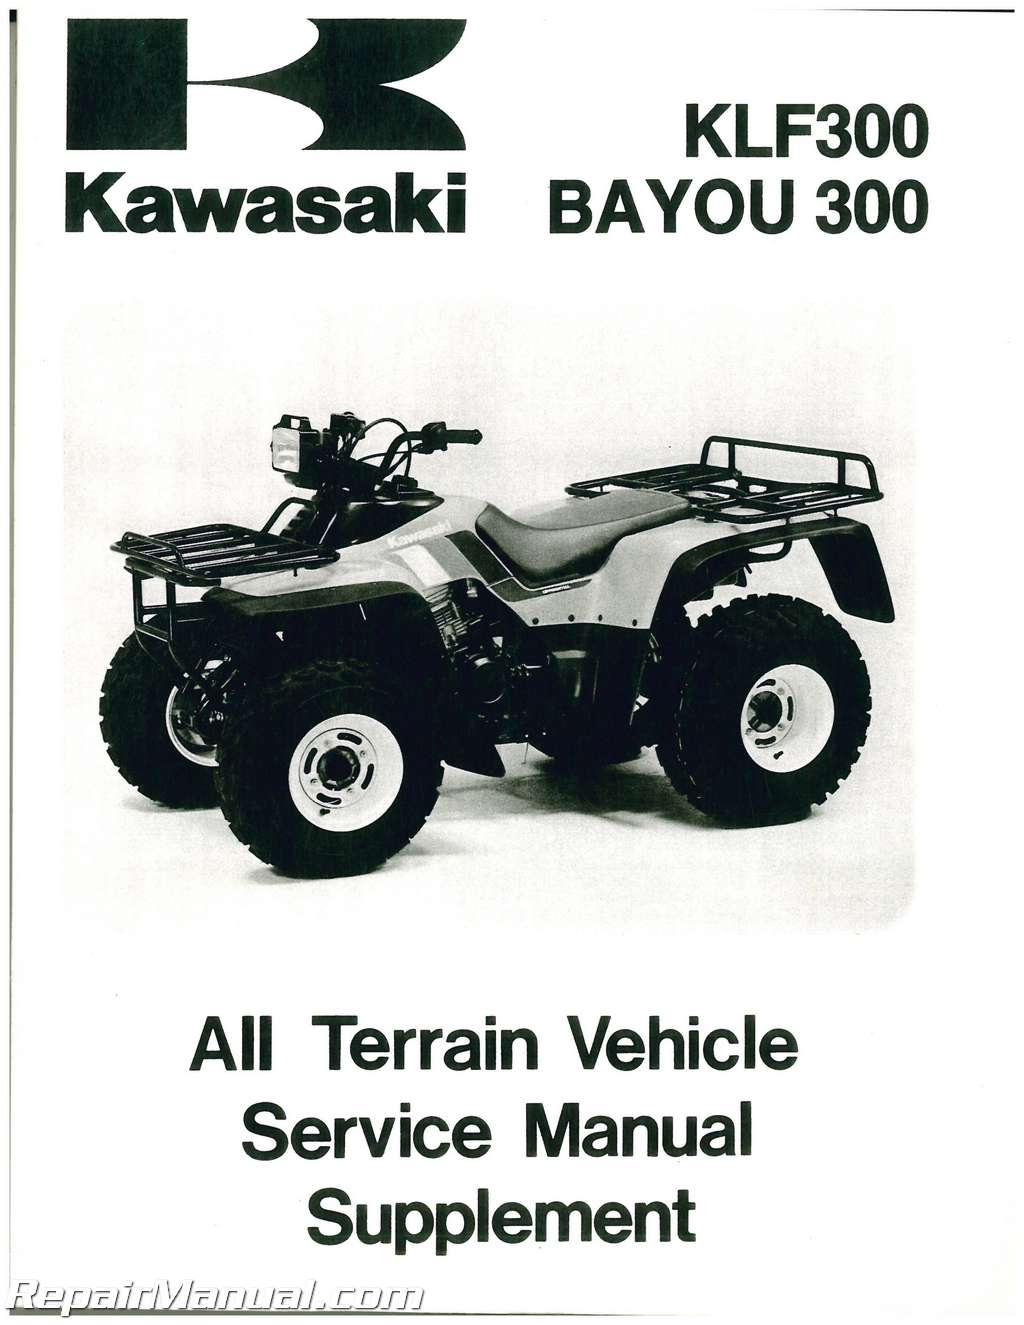 Service Manual Klf300 20012006 Mitsubishi Pajero Repair Workshop Manuals Down Array 1988 2001 Kawasaki Supplement Rh Repairmanual